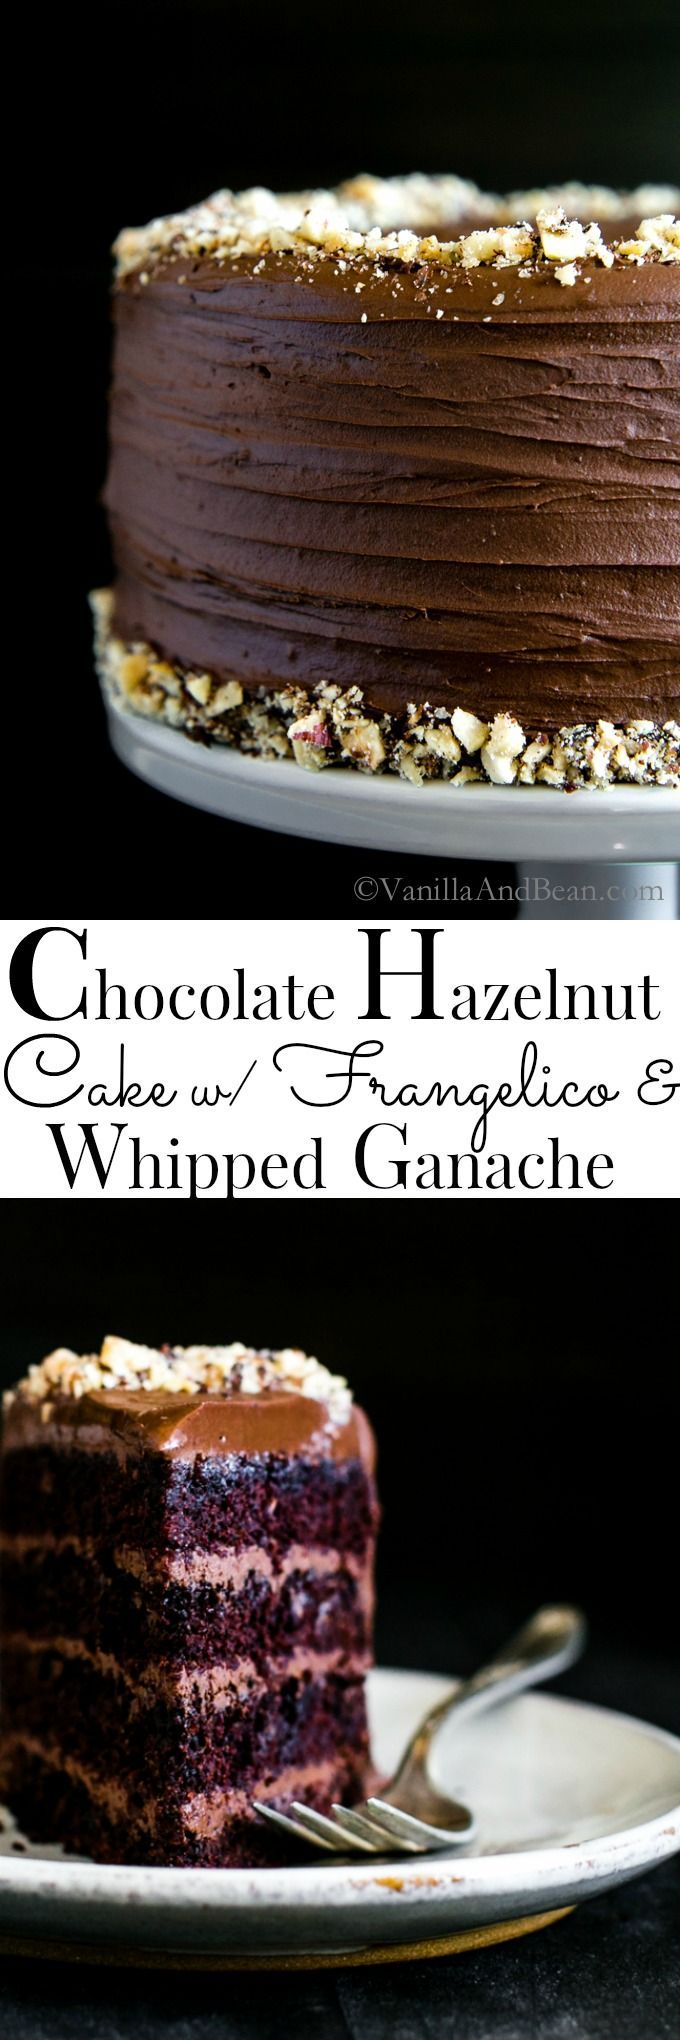 Vegan Chocolate Hazelnut Cake with Whipped Ganache | Dairy Free | Egg Free by Vanilla And Bean